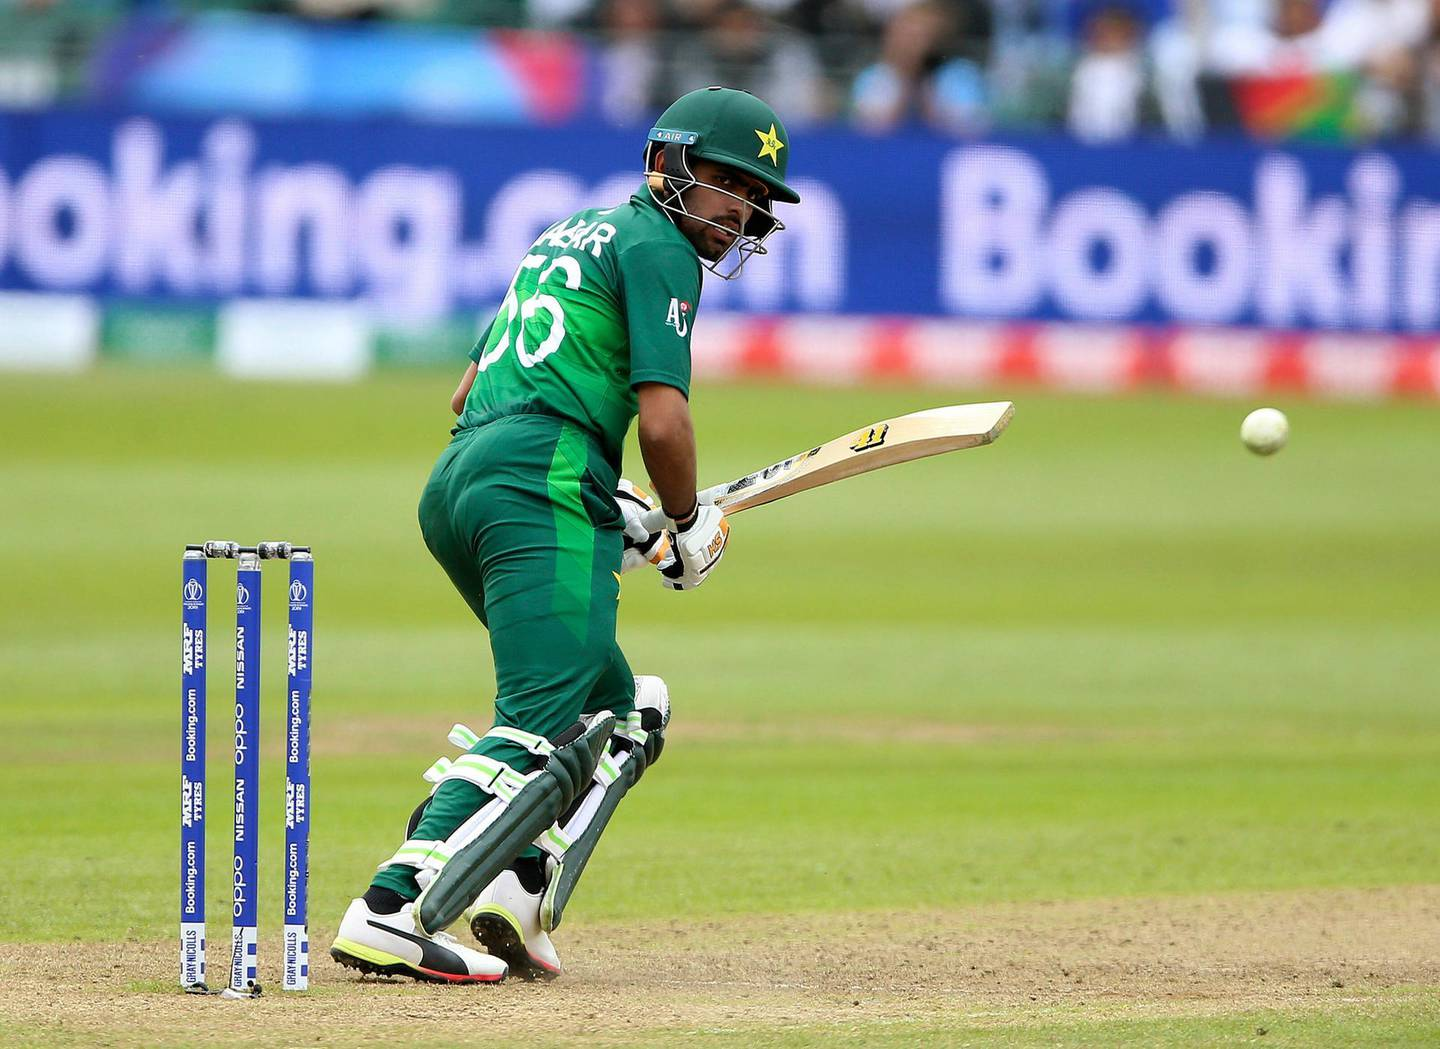 Pakistan's Babar Azam reaches his century during the ICC Cricket World Cup Warm up match between Pakistan and Afghanistan, at The Bristol County Ground, in Bristol, England, Friday May 24, 2019. (Nigel French/PA via AP)